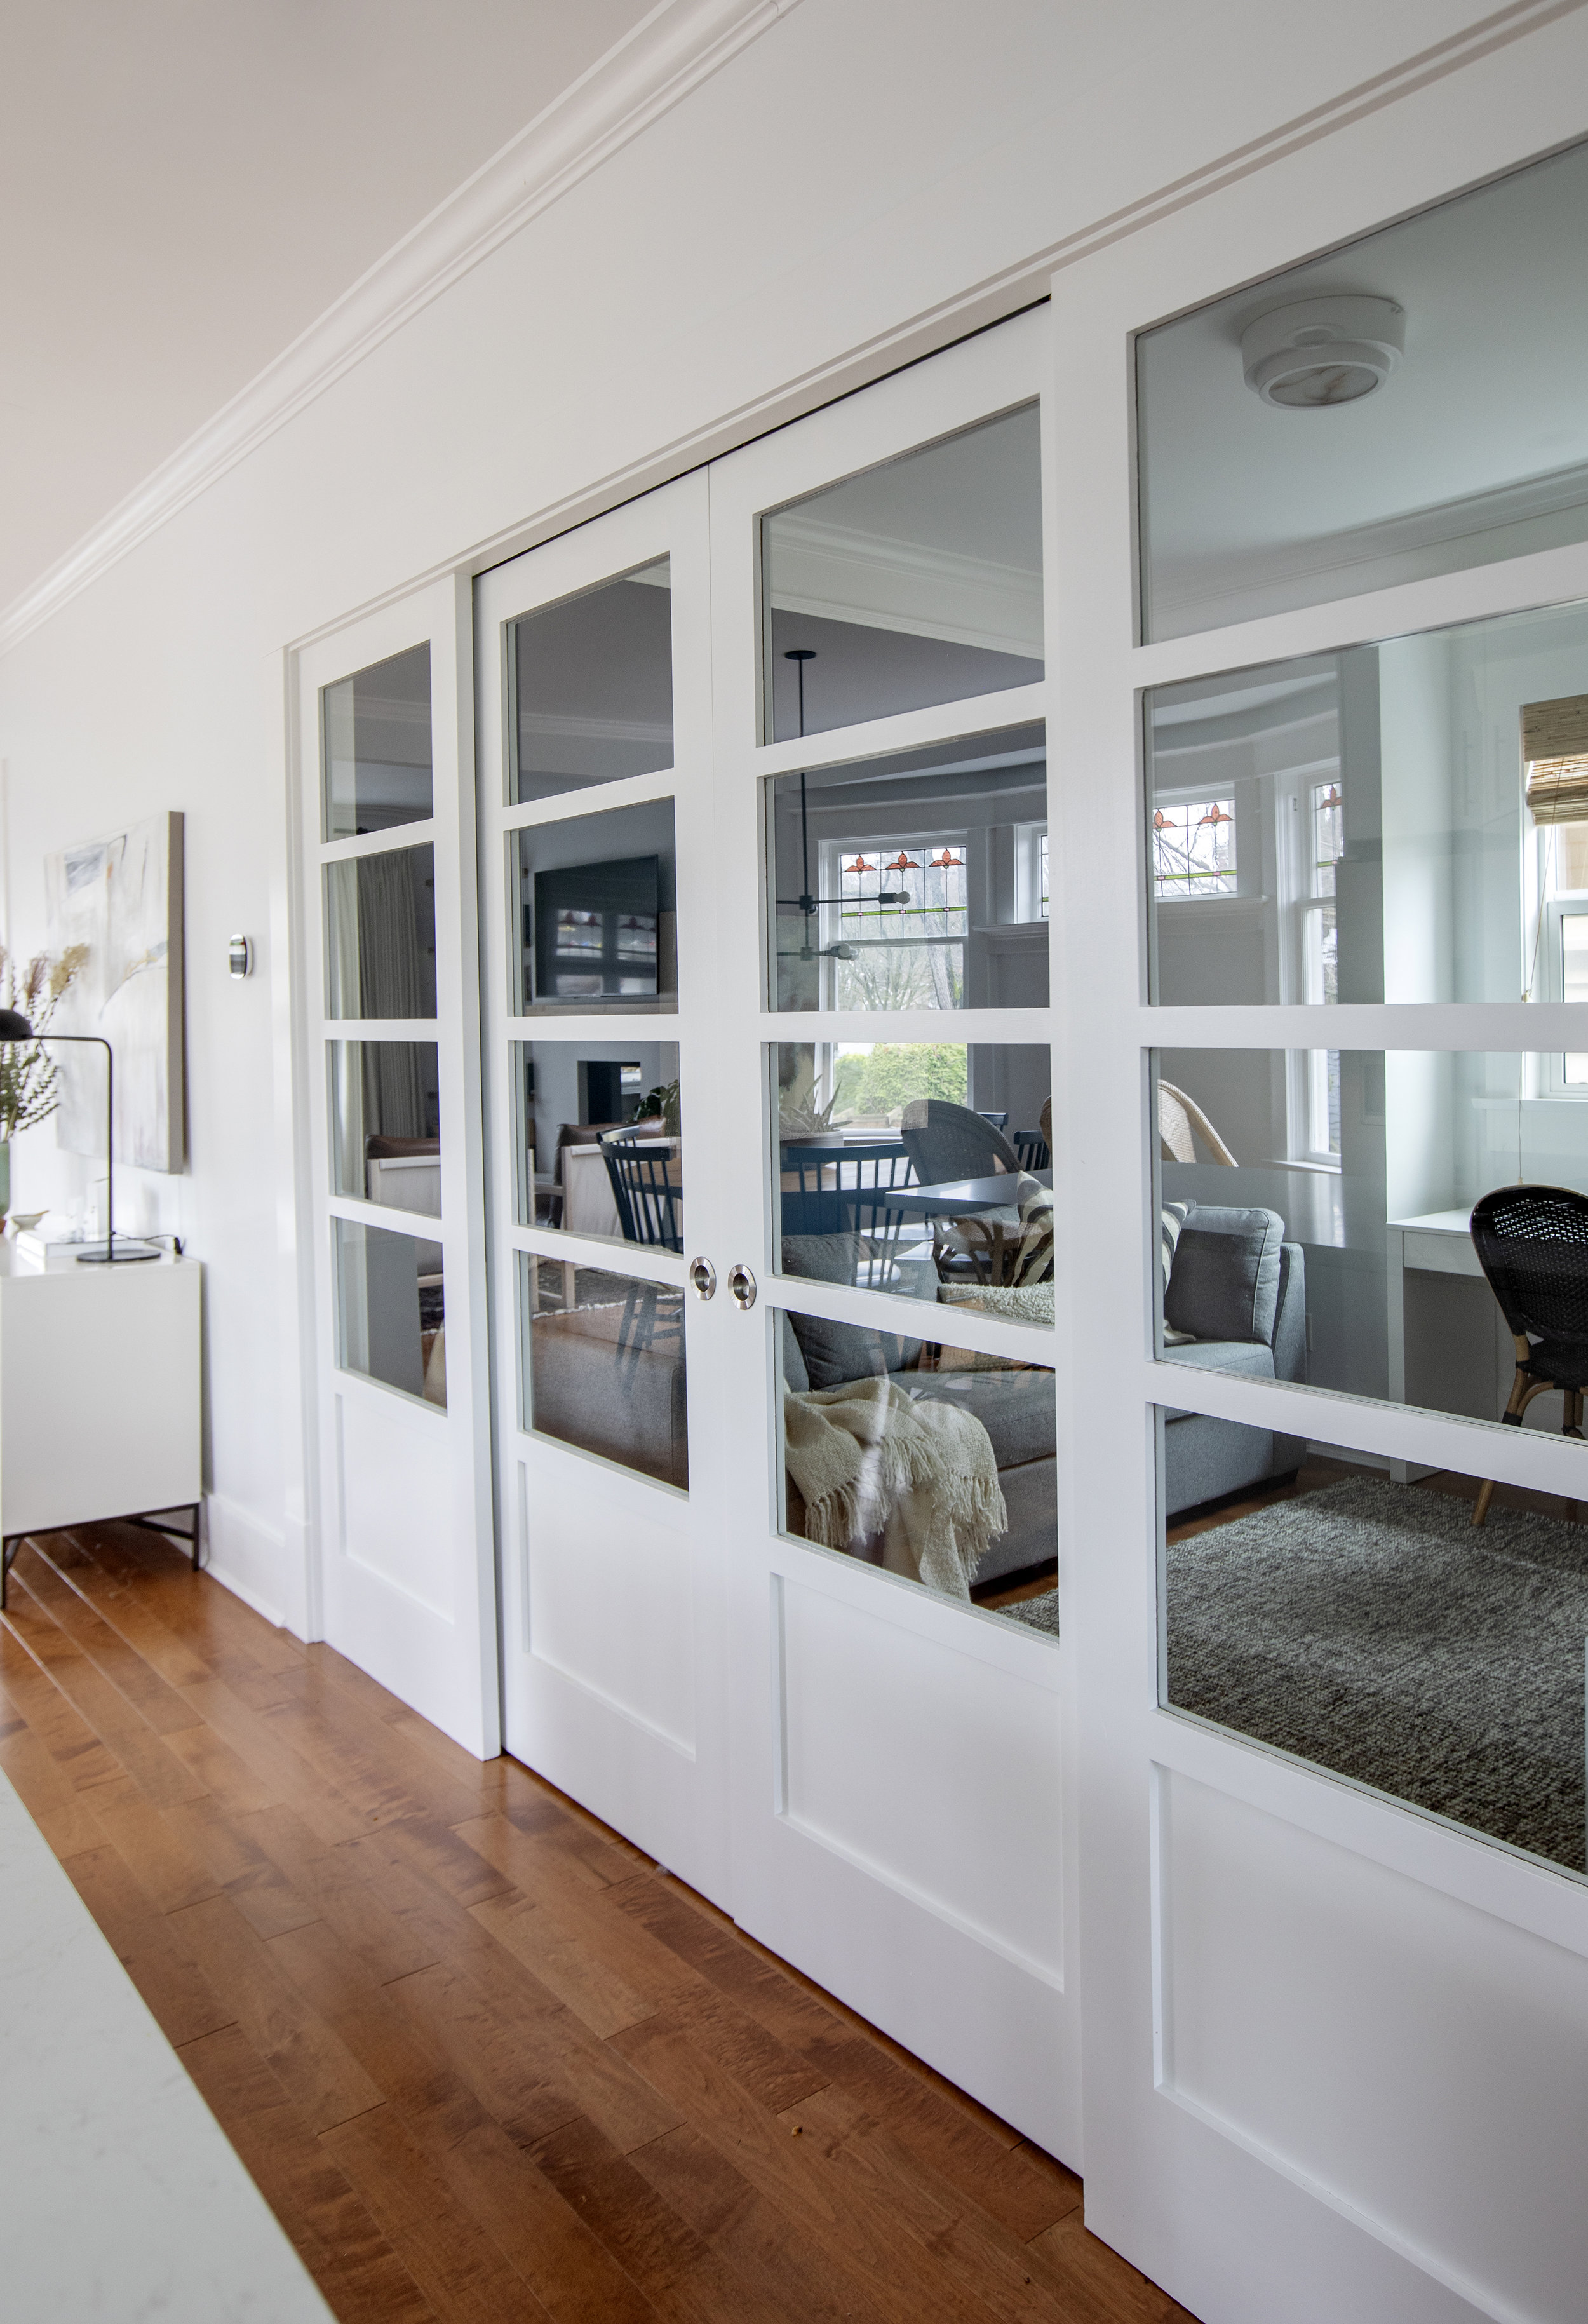 Large, glassed double doors separate the kitchen and the living room from the family room. The living room is reflected clearly in the glass.